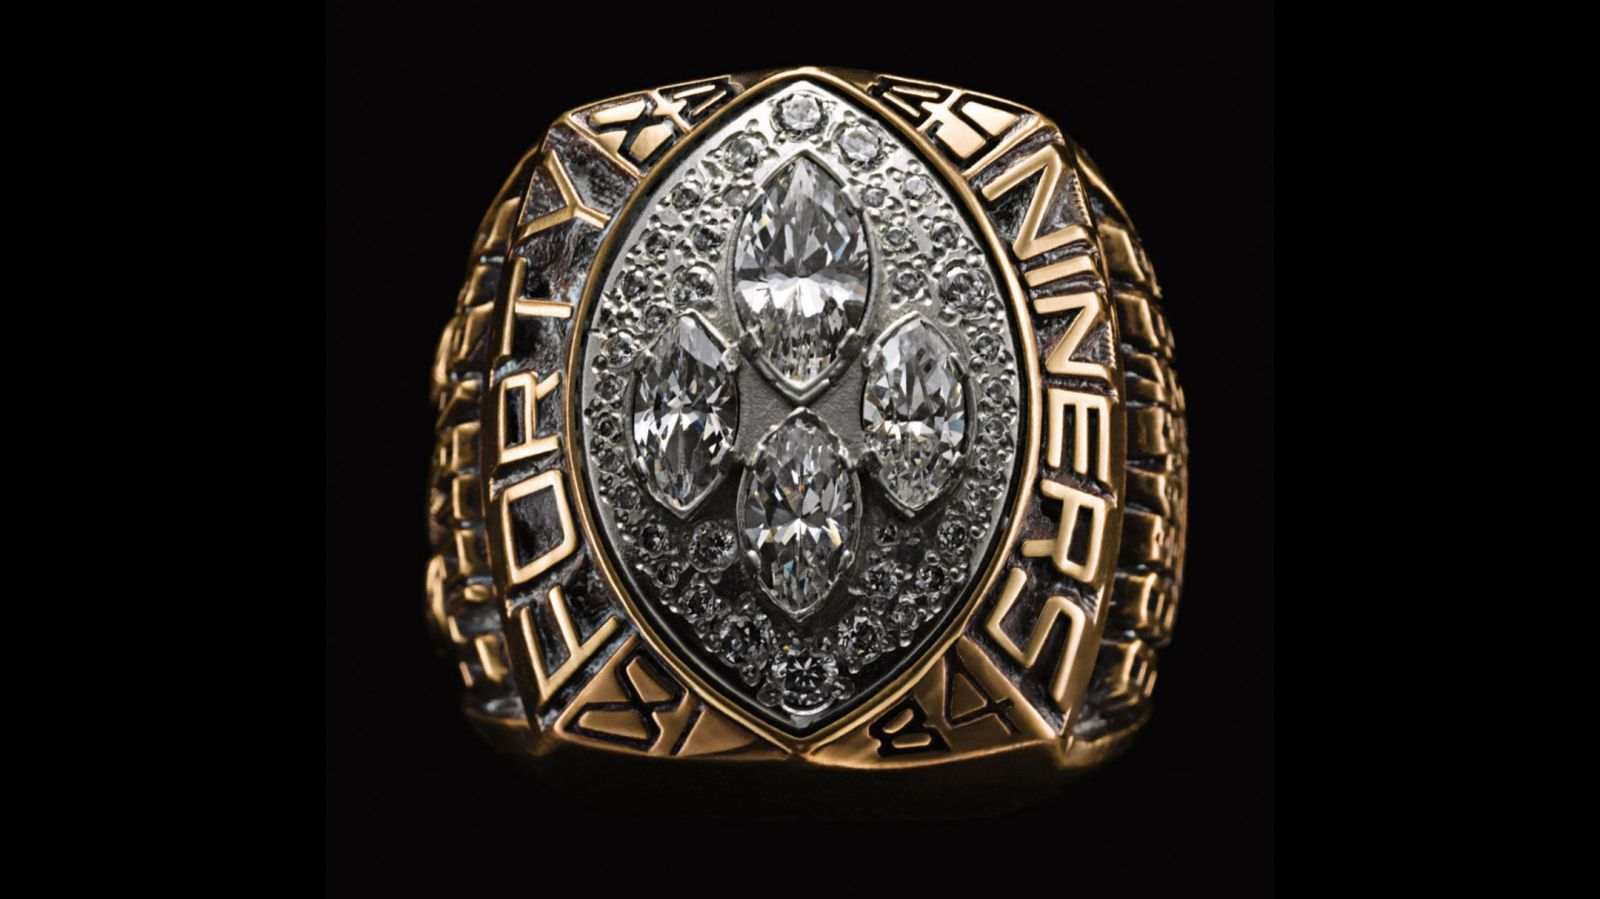 1989 San Francisco 49ers Super Bowl Championship Ring